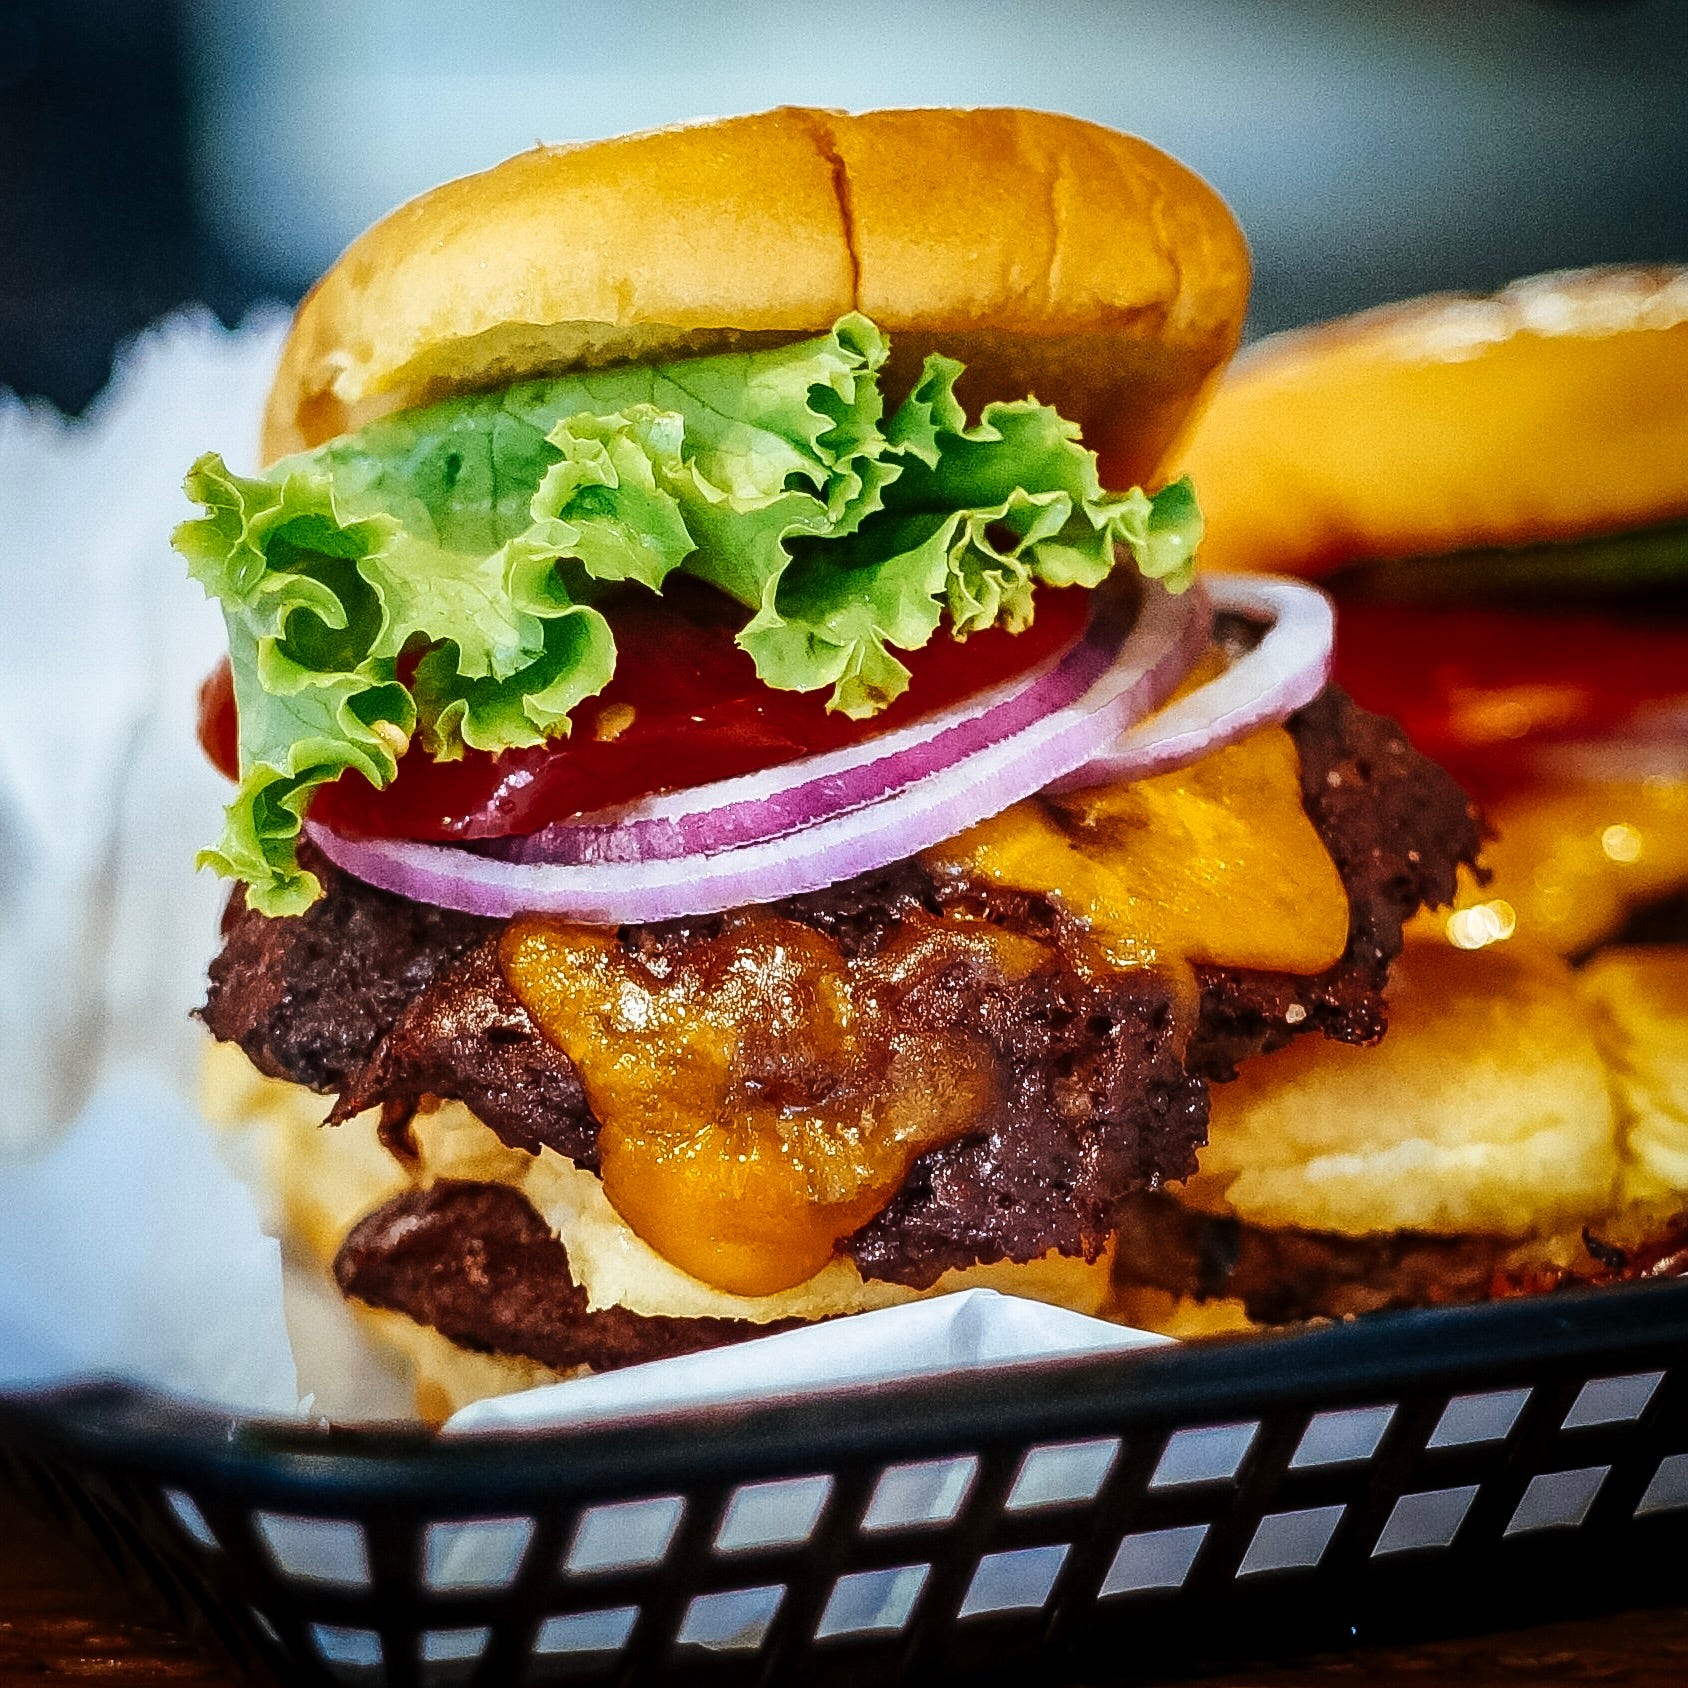 Round one in the search for the best burger in Wichita Falls